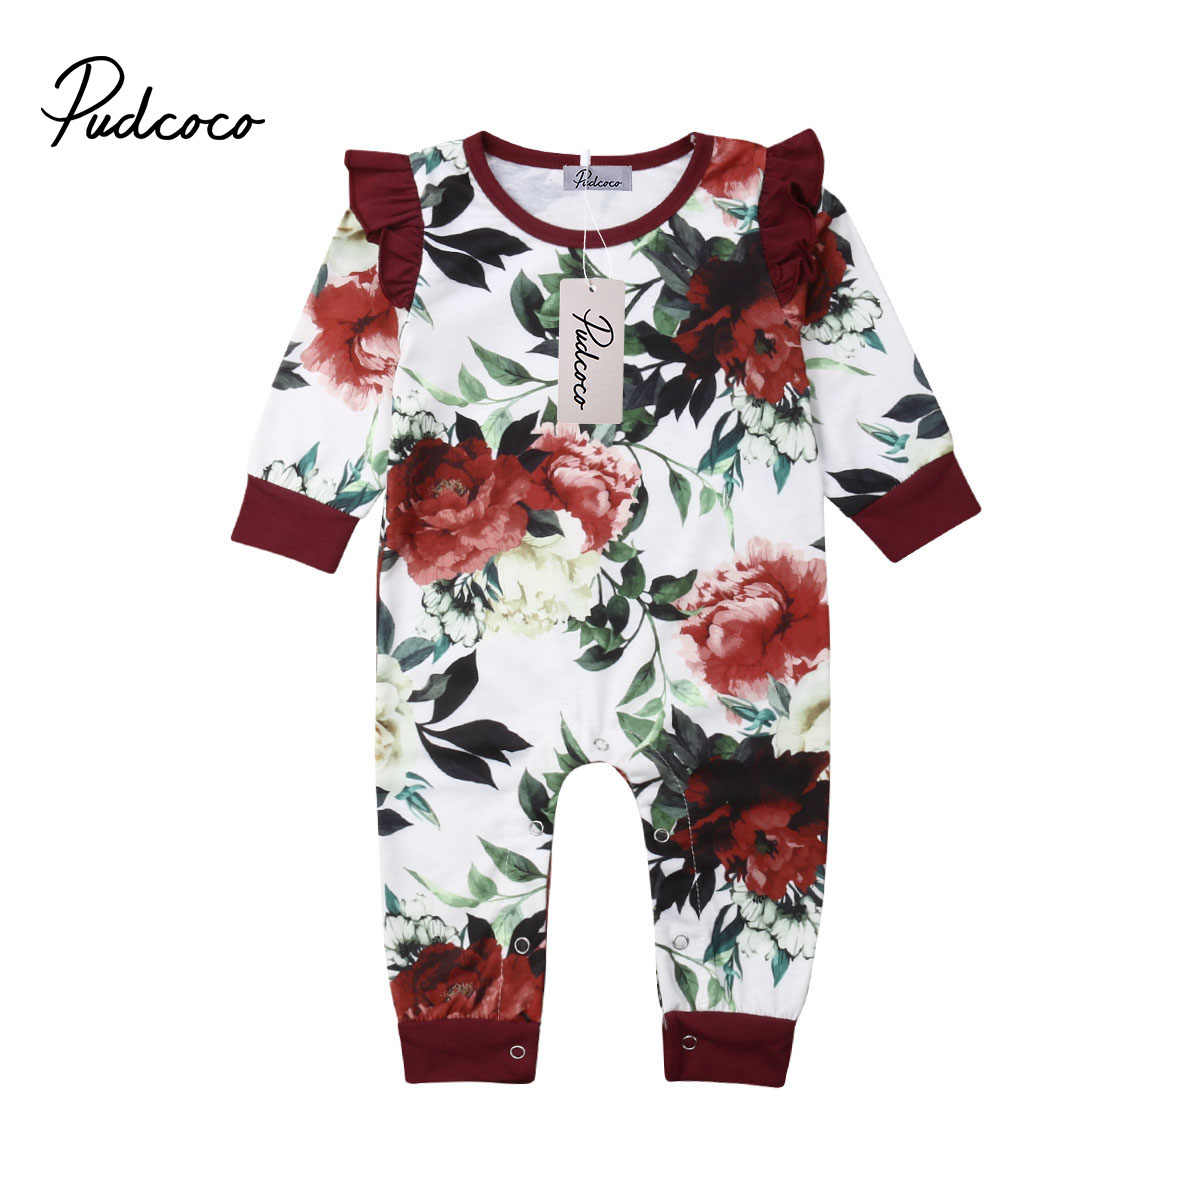 33c09d9ac776 Detail Feedback Questions about Pudcoco Infant Baby Girls Cotton ...